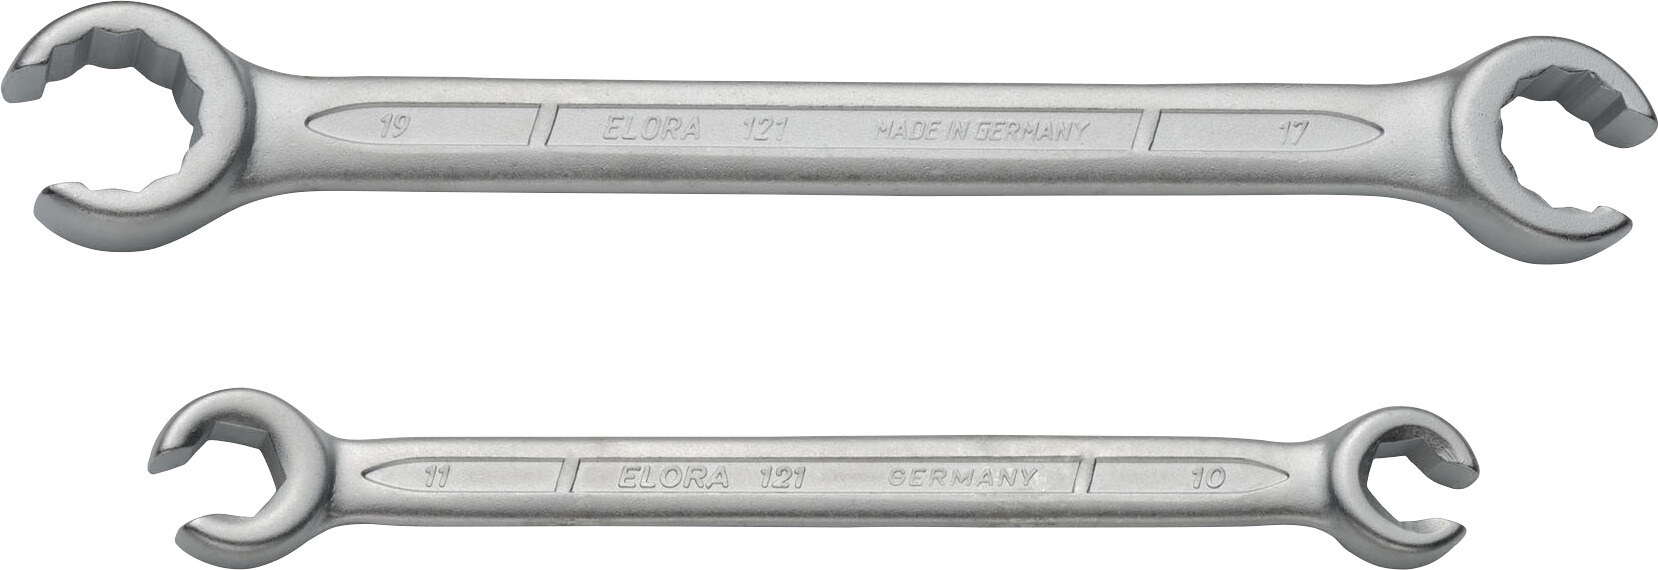 Elora 37523 12 mm Single Open Ended Spanner by ELORA